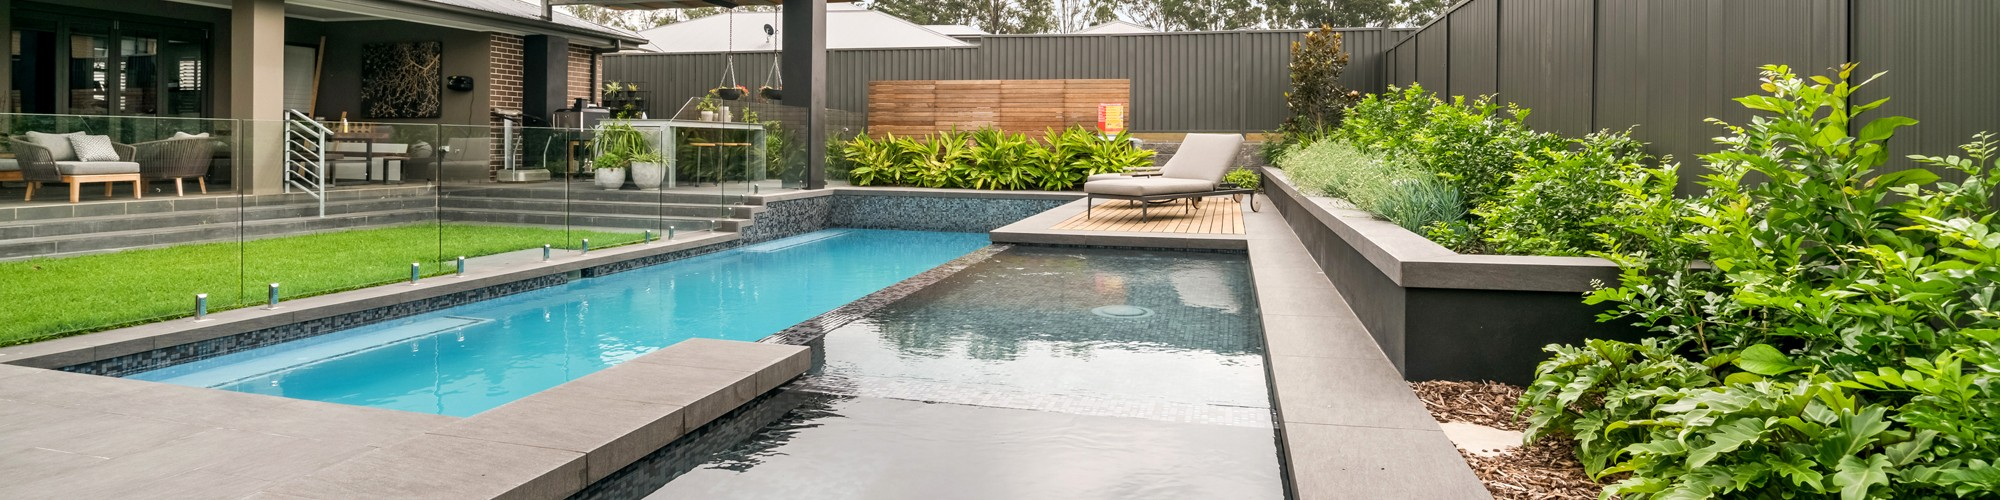 Outdoor design finishing touches sydney pool and for Pool design sydney